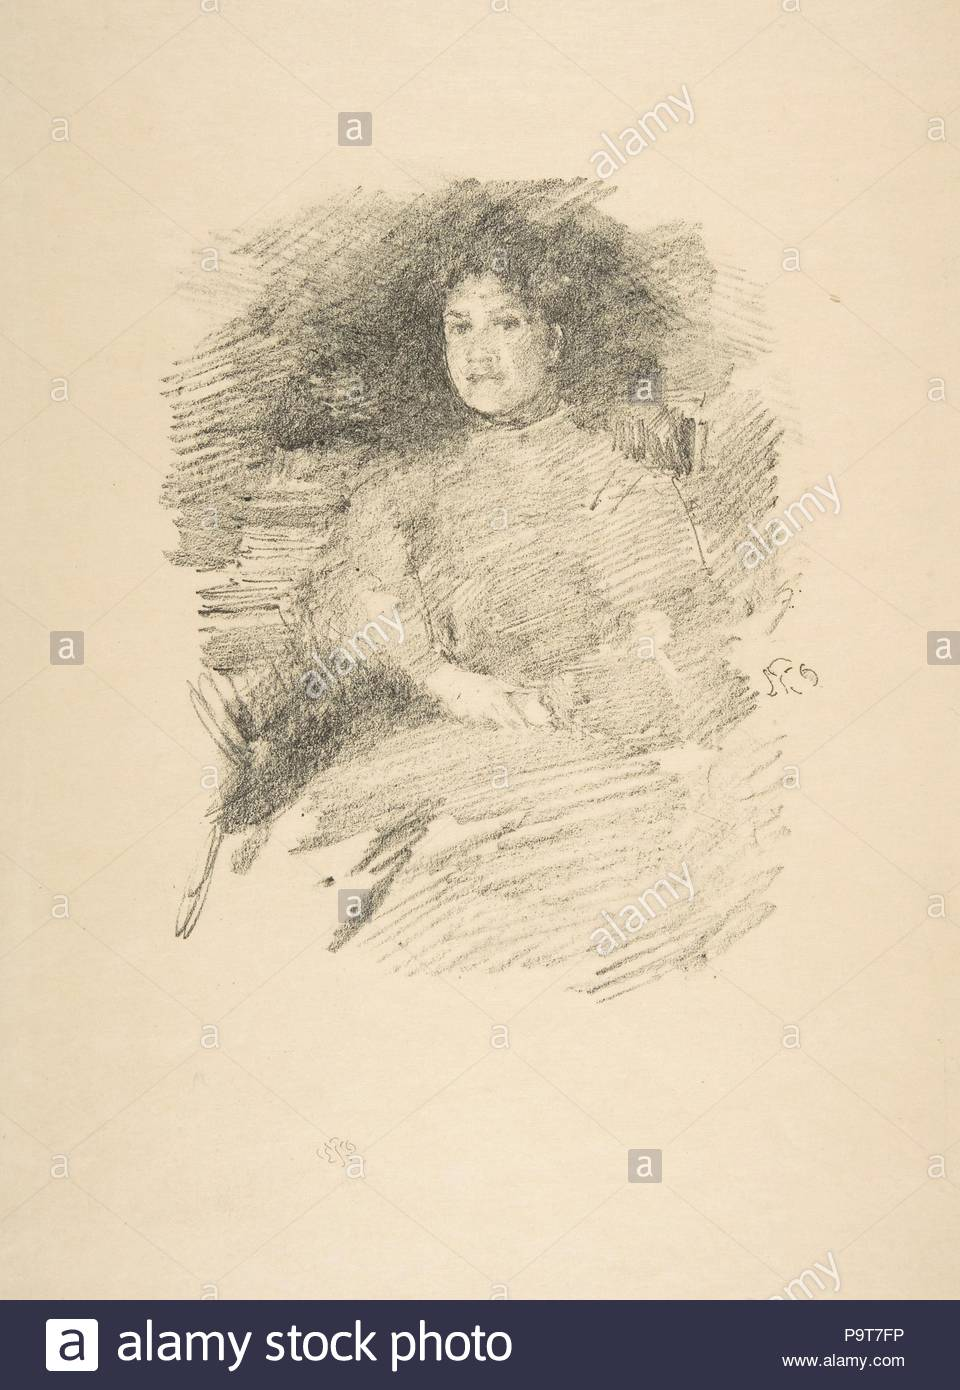 Firelight (Mrs. Joseph Pennell), 1896, Transfer lithograph, drawn on white transfer paper with a grained-stone texture, Sheet: 12 1/8 in. × 9 in. (30.8 × 22.9 cm), Prints, James McNeill Whistler (American, Lowell, Massachusetts 1834–1903 London). - Stock Image